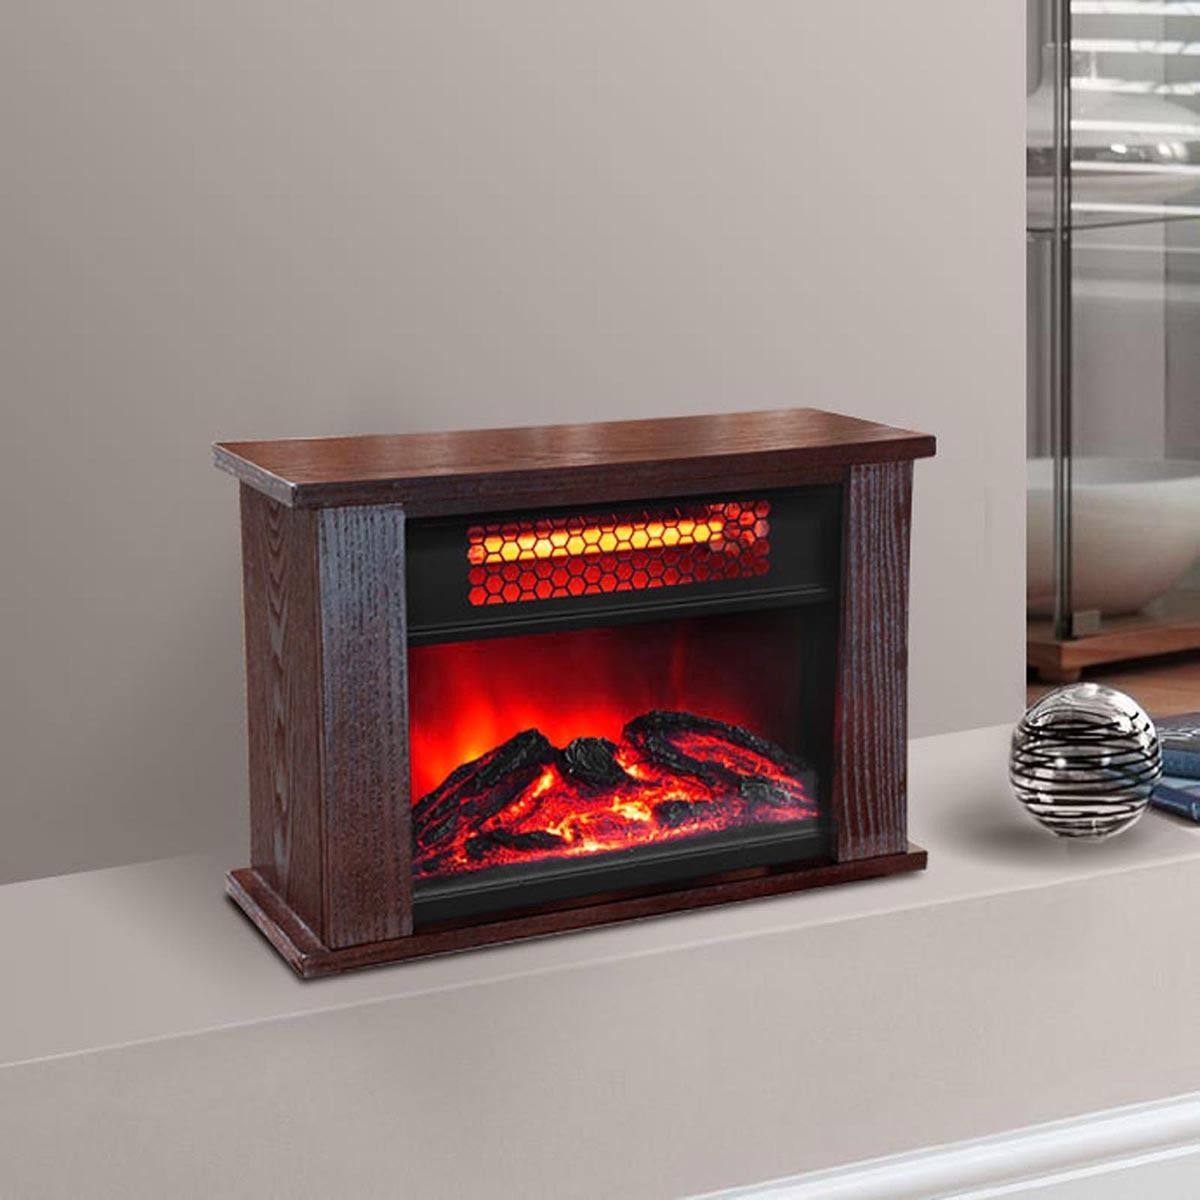 Mini Cars For Sale >> 750 Watt Infrared Mini Fireplace Heater